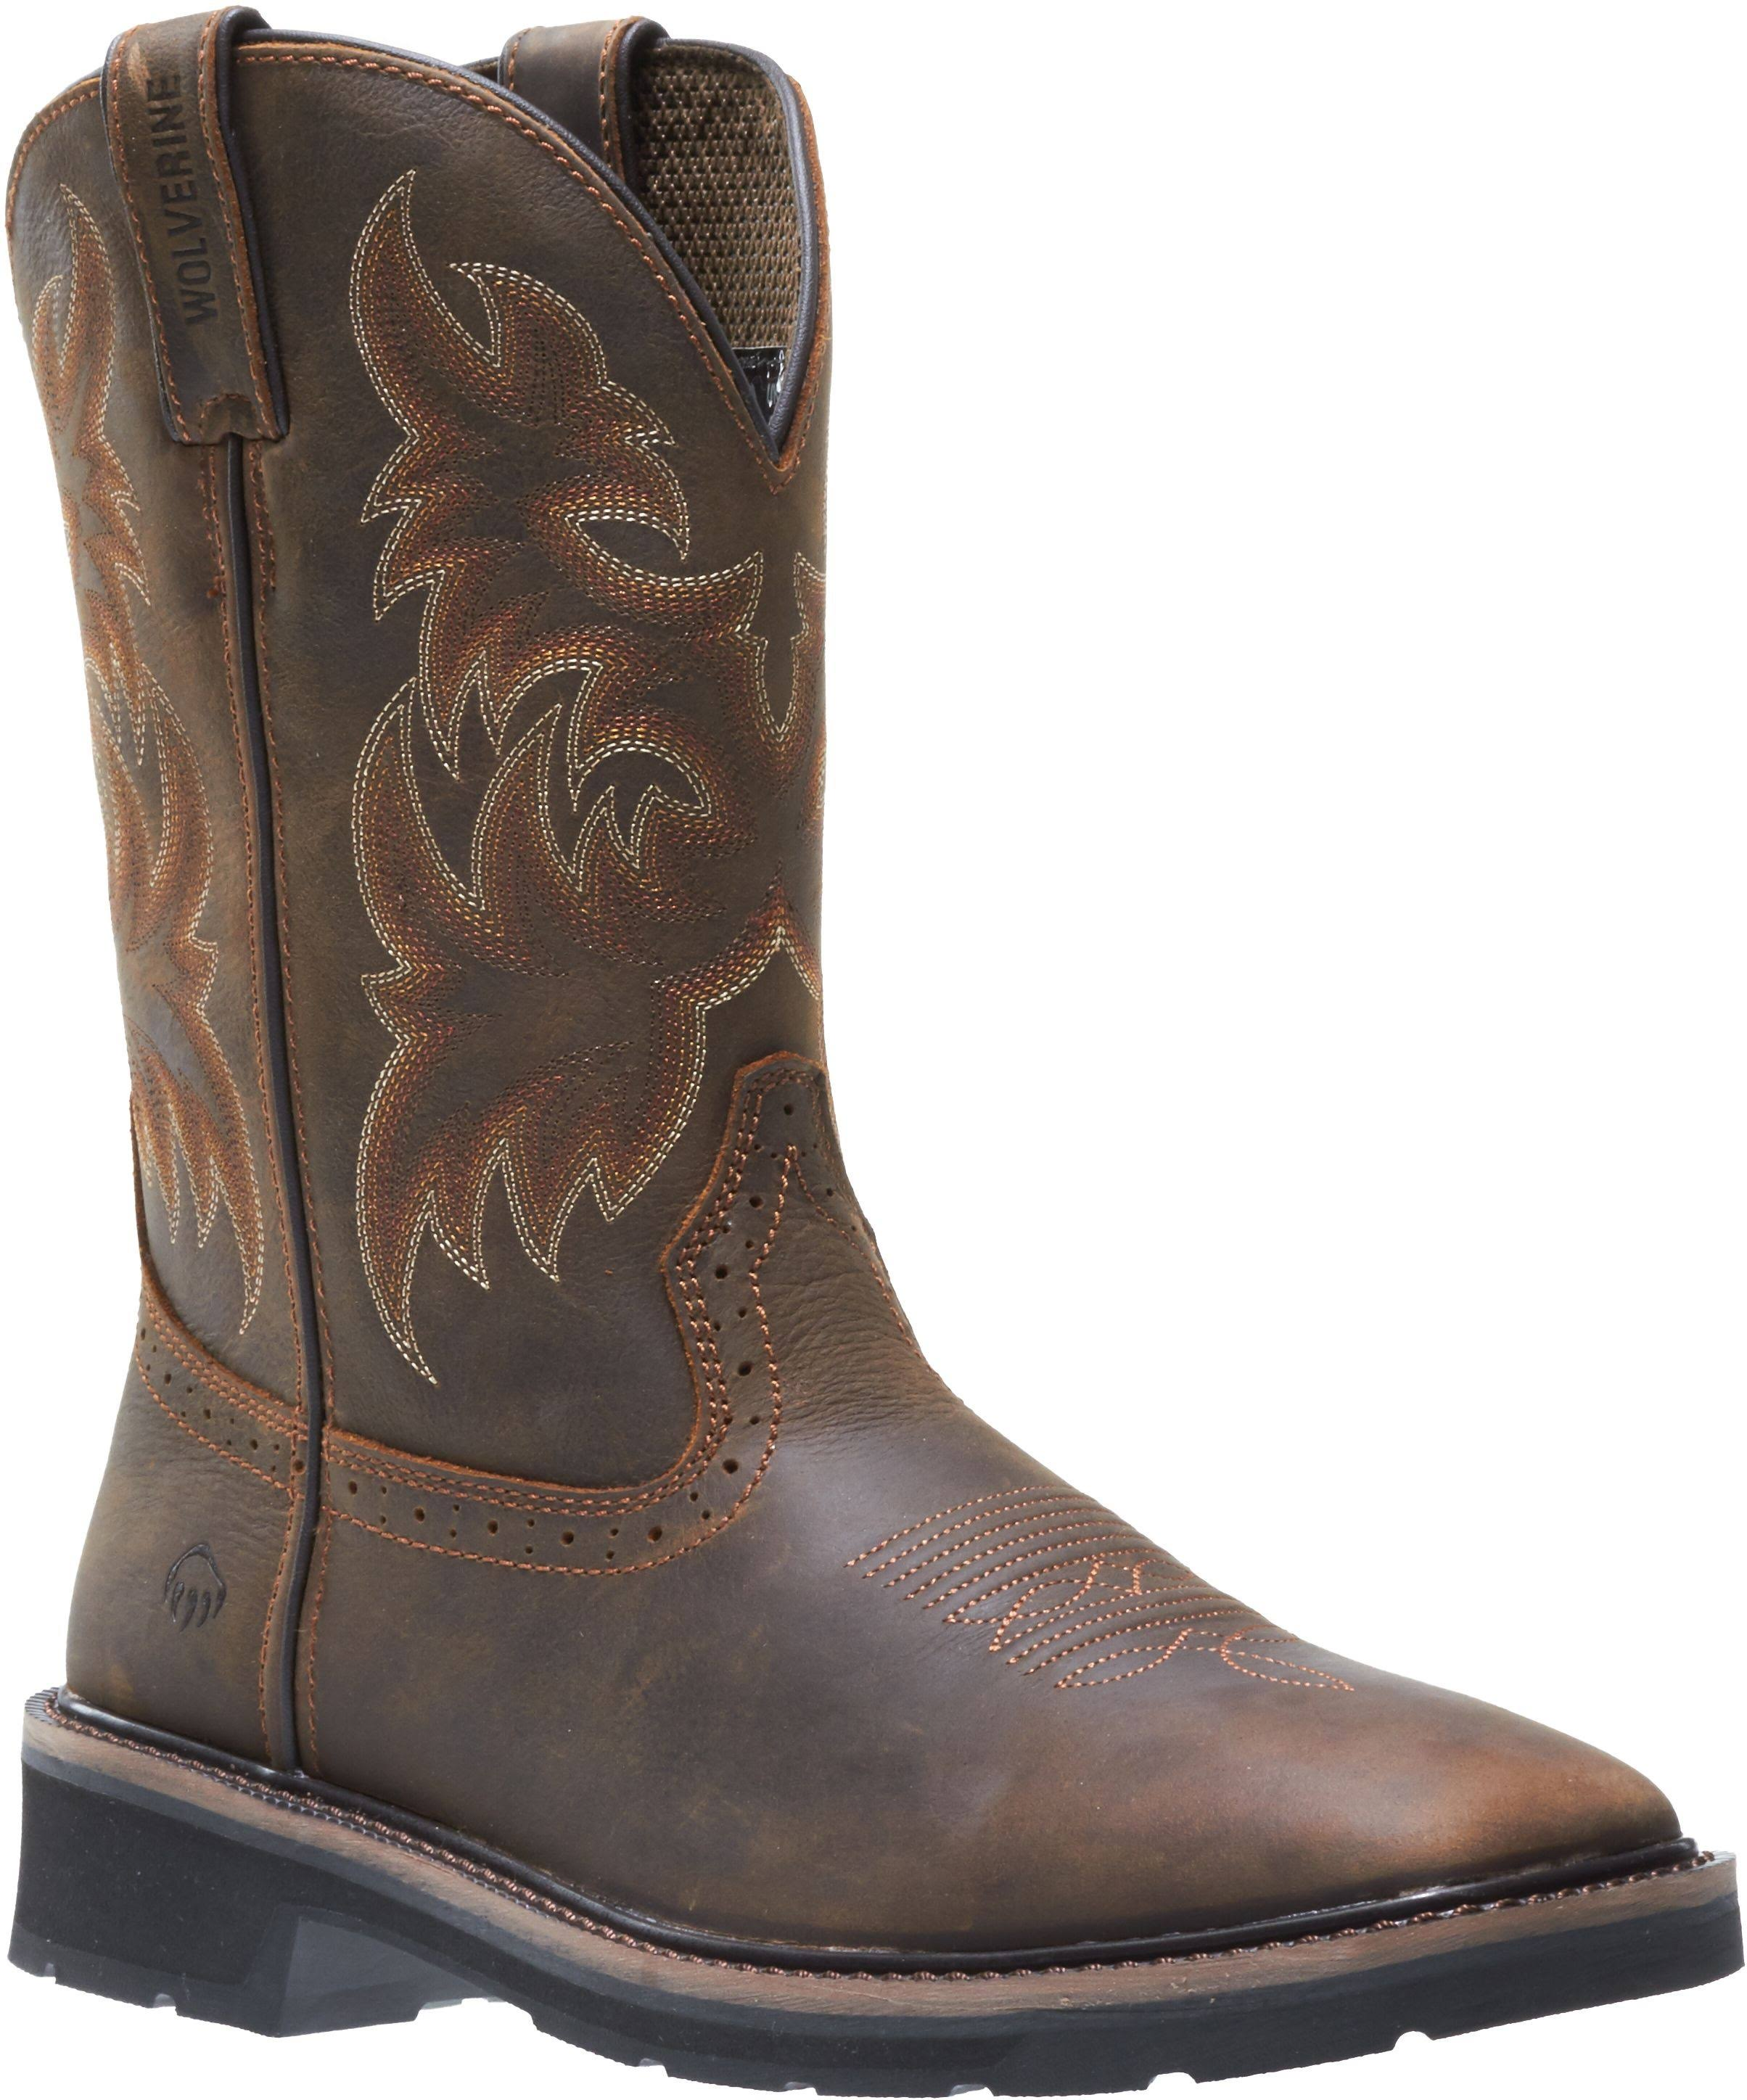 Wolverine Rancher Wellington Men's Steel-Toe Work Boots